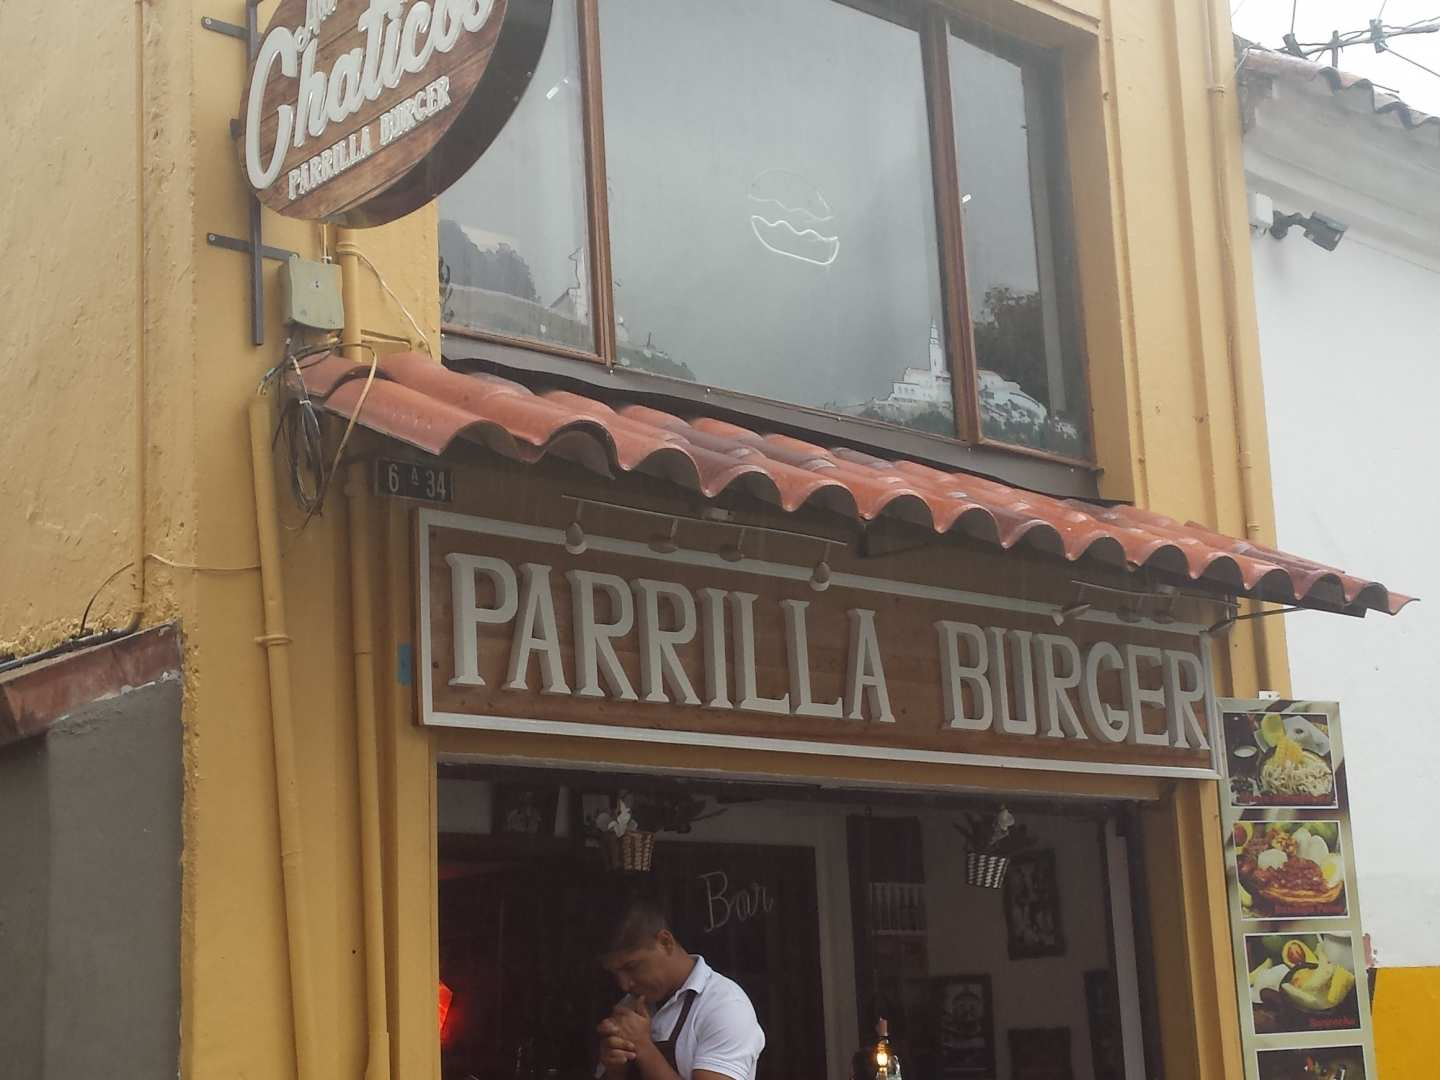 Ala Chaticos Parrilla Burger